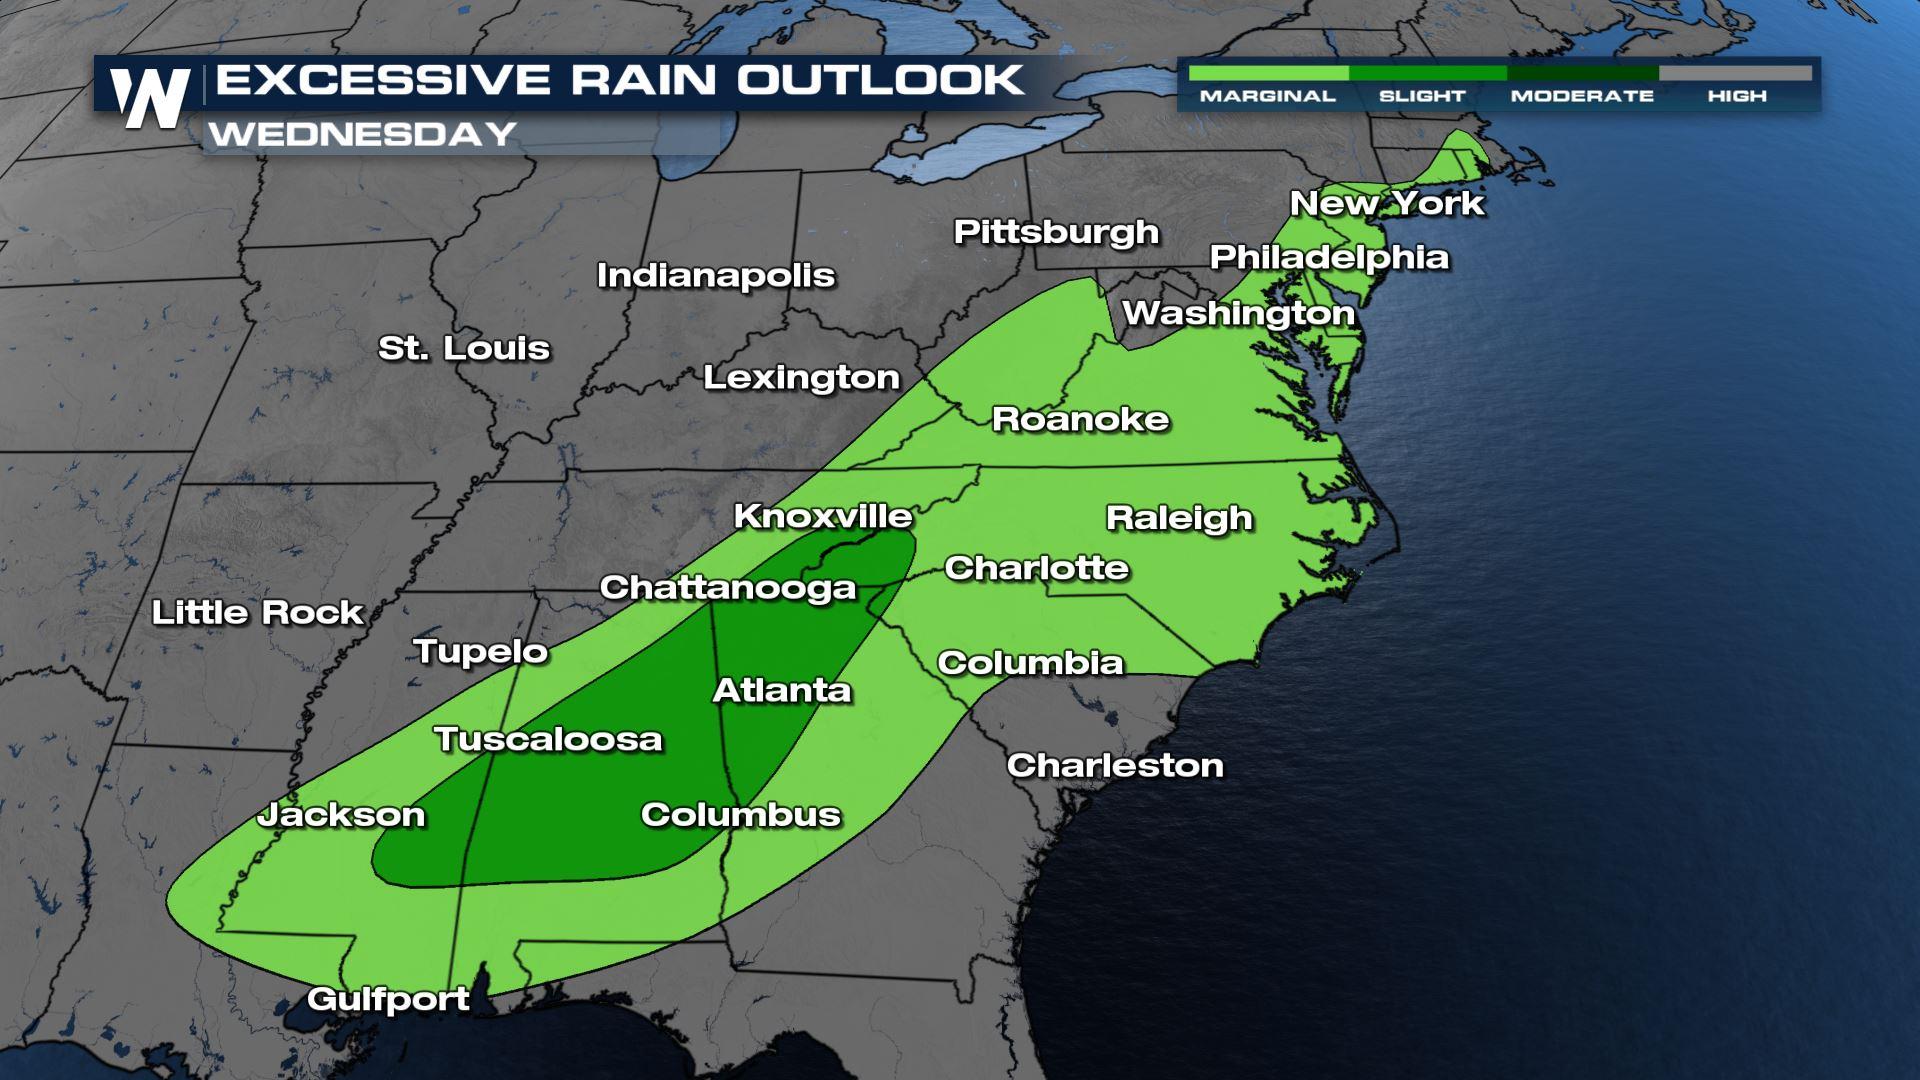 Flood Risk Continues Across the South and Mid-Atlatnic